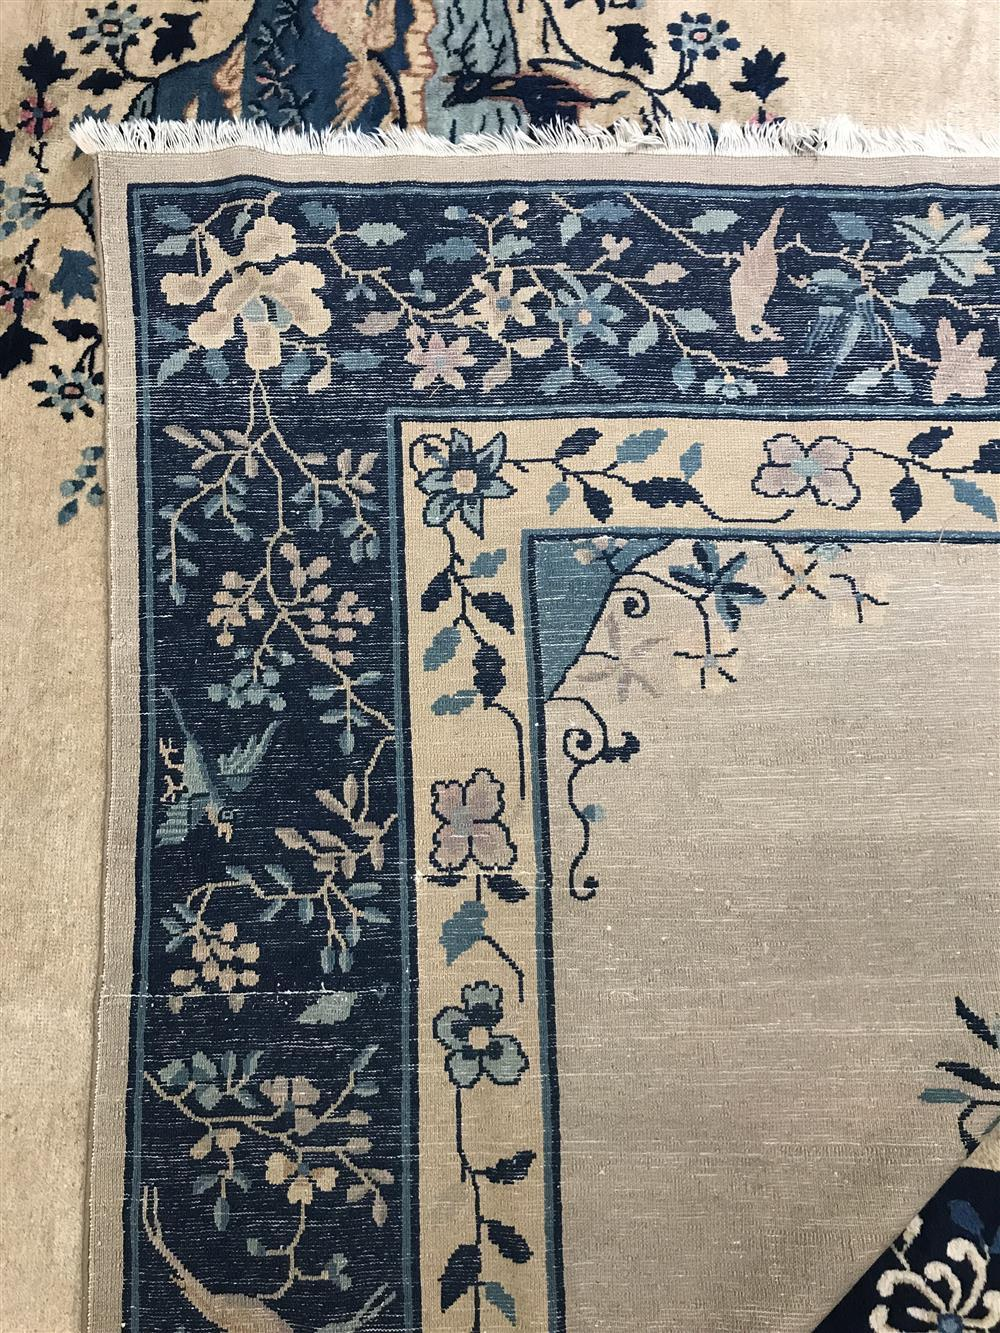 Chinese Peking Carpet, ca. 1900, altered in length at both ends; 10 ft. 7 in. x 11 ft. 7 in.